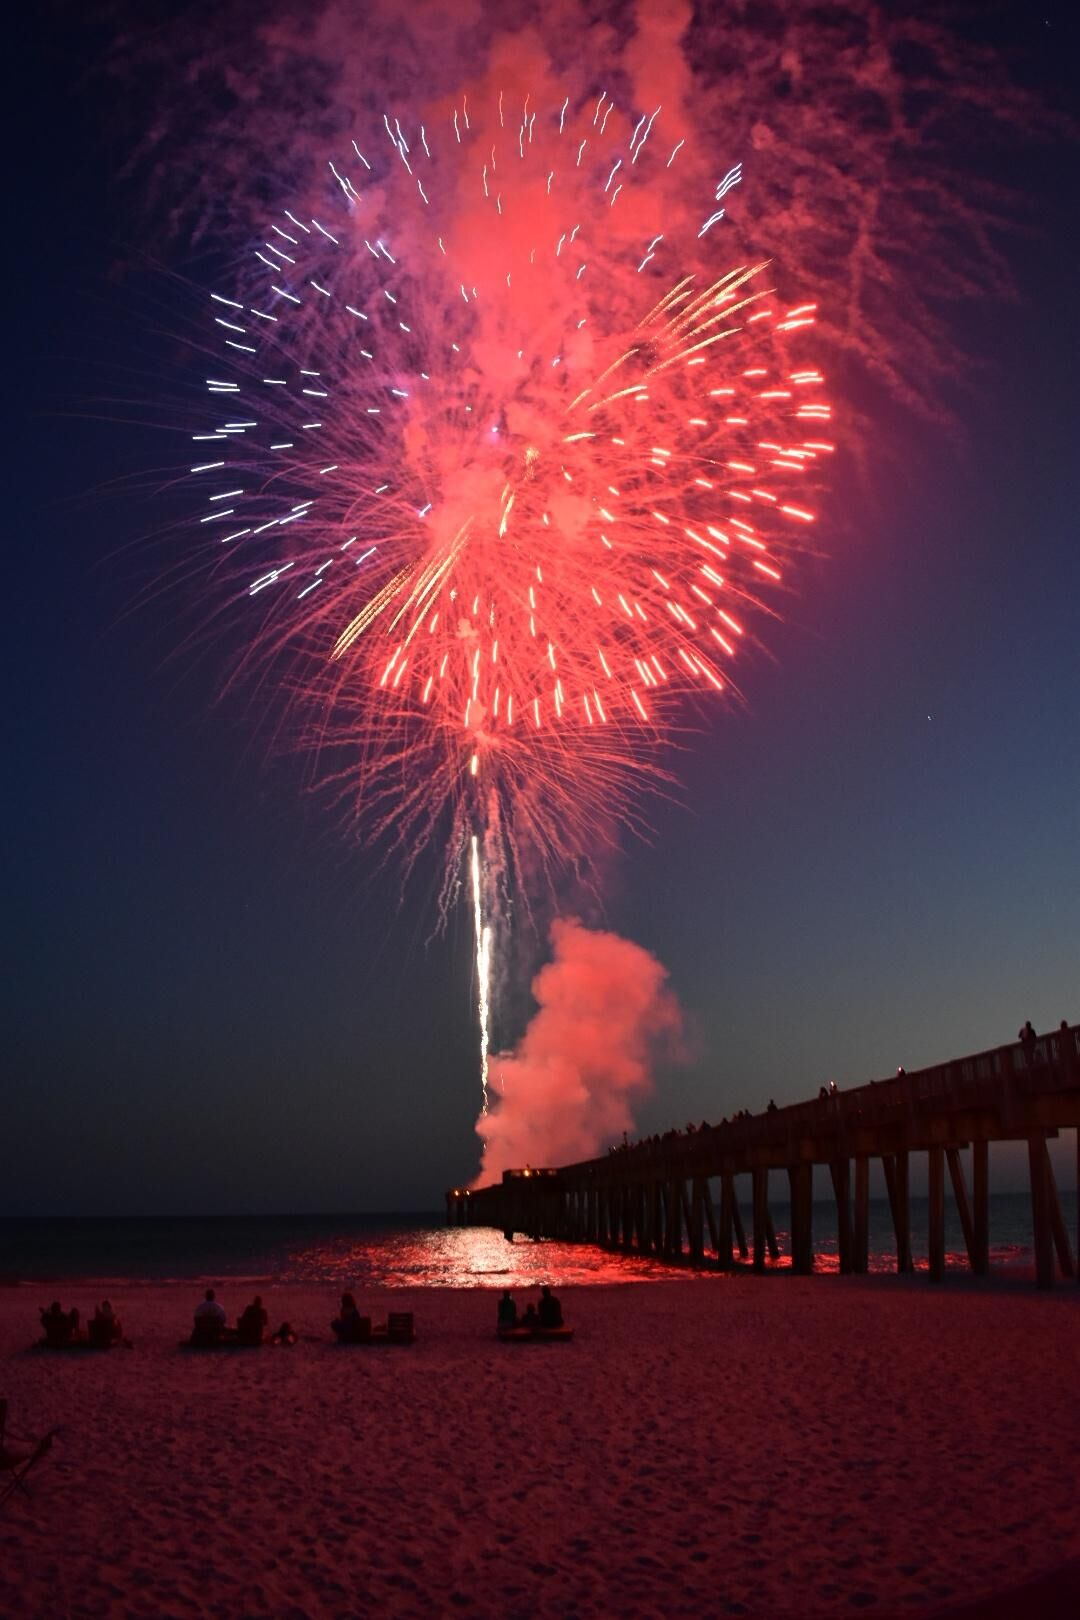 Fireworks on pier